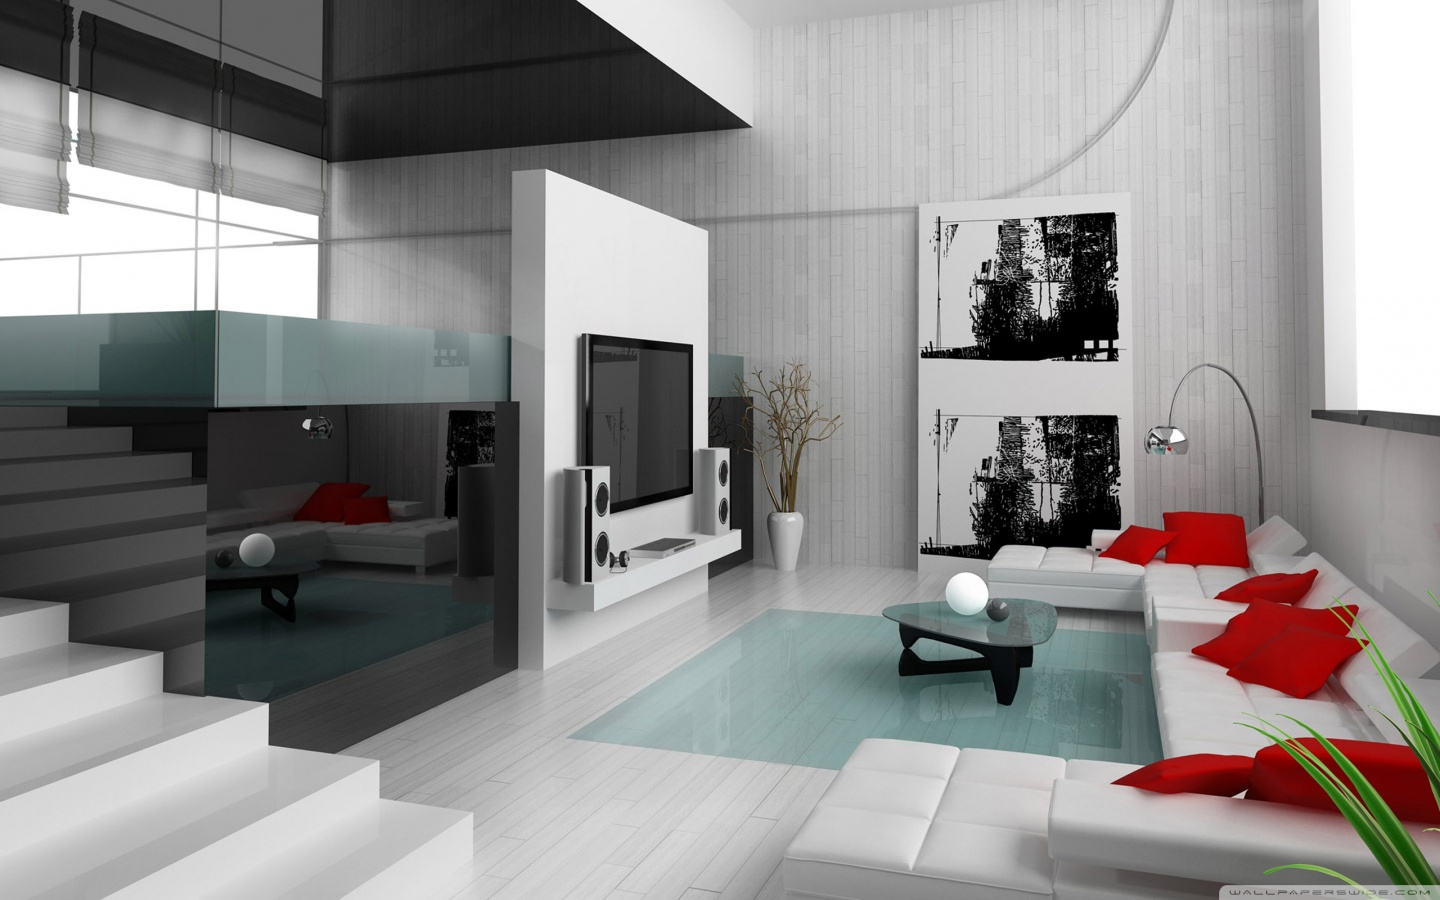 Minimalist interior design imagination art architecture Interior designing of your home